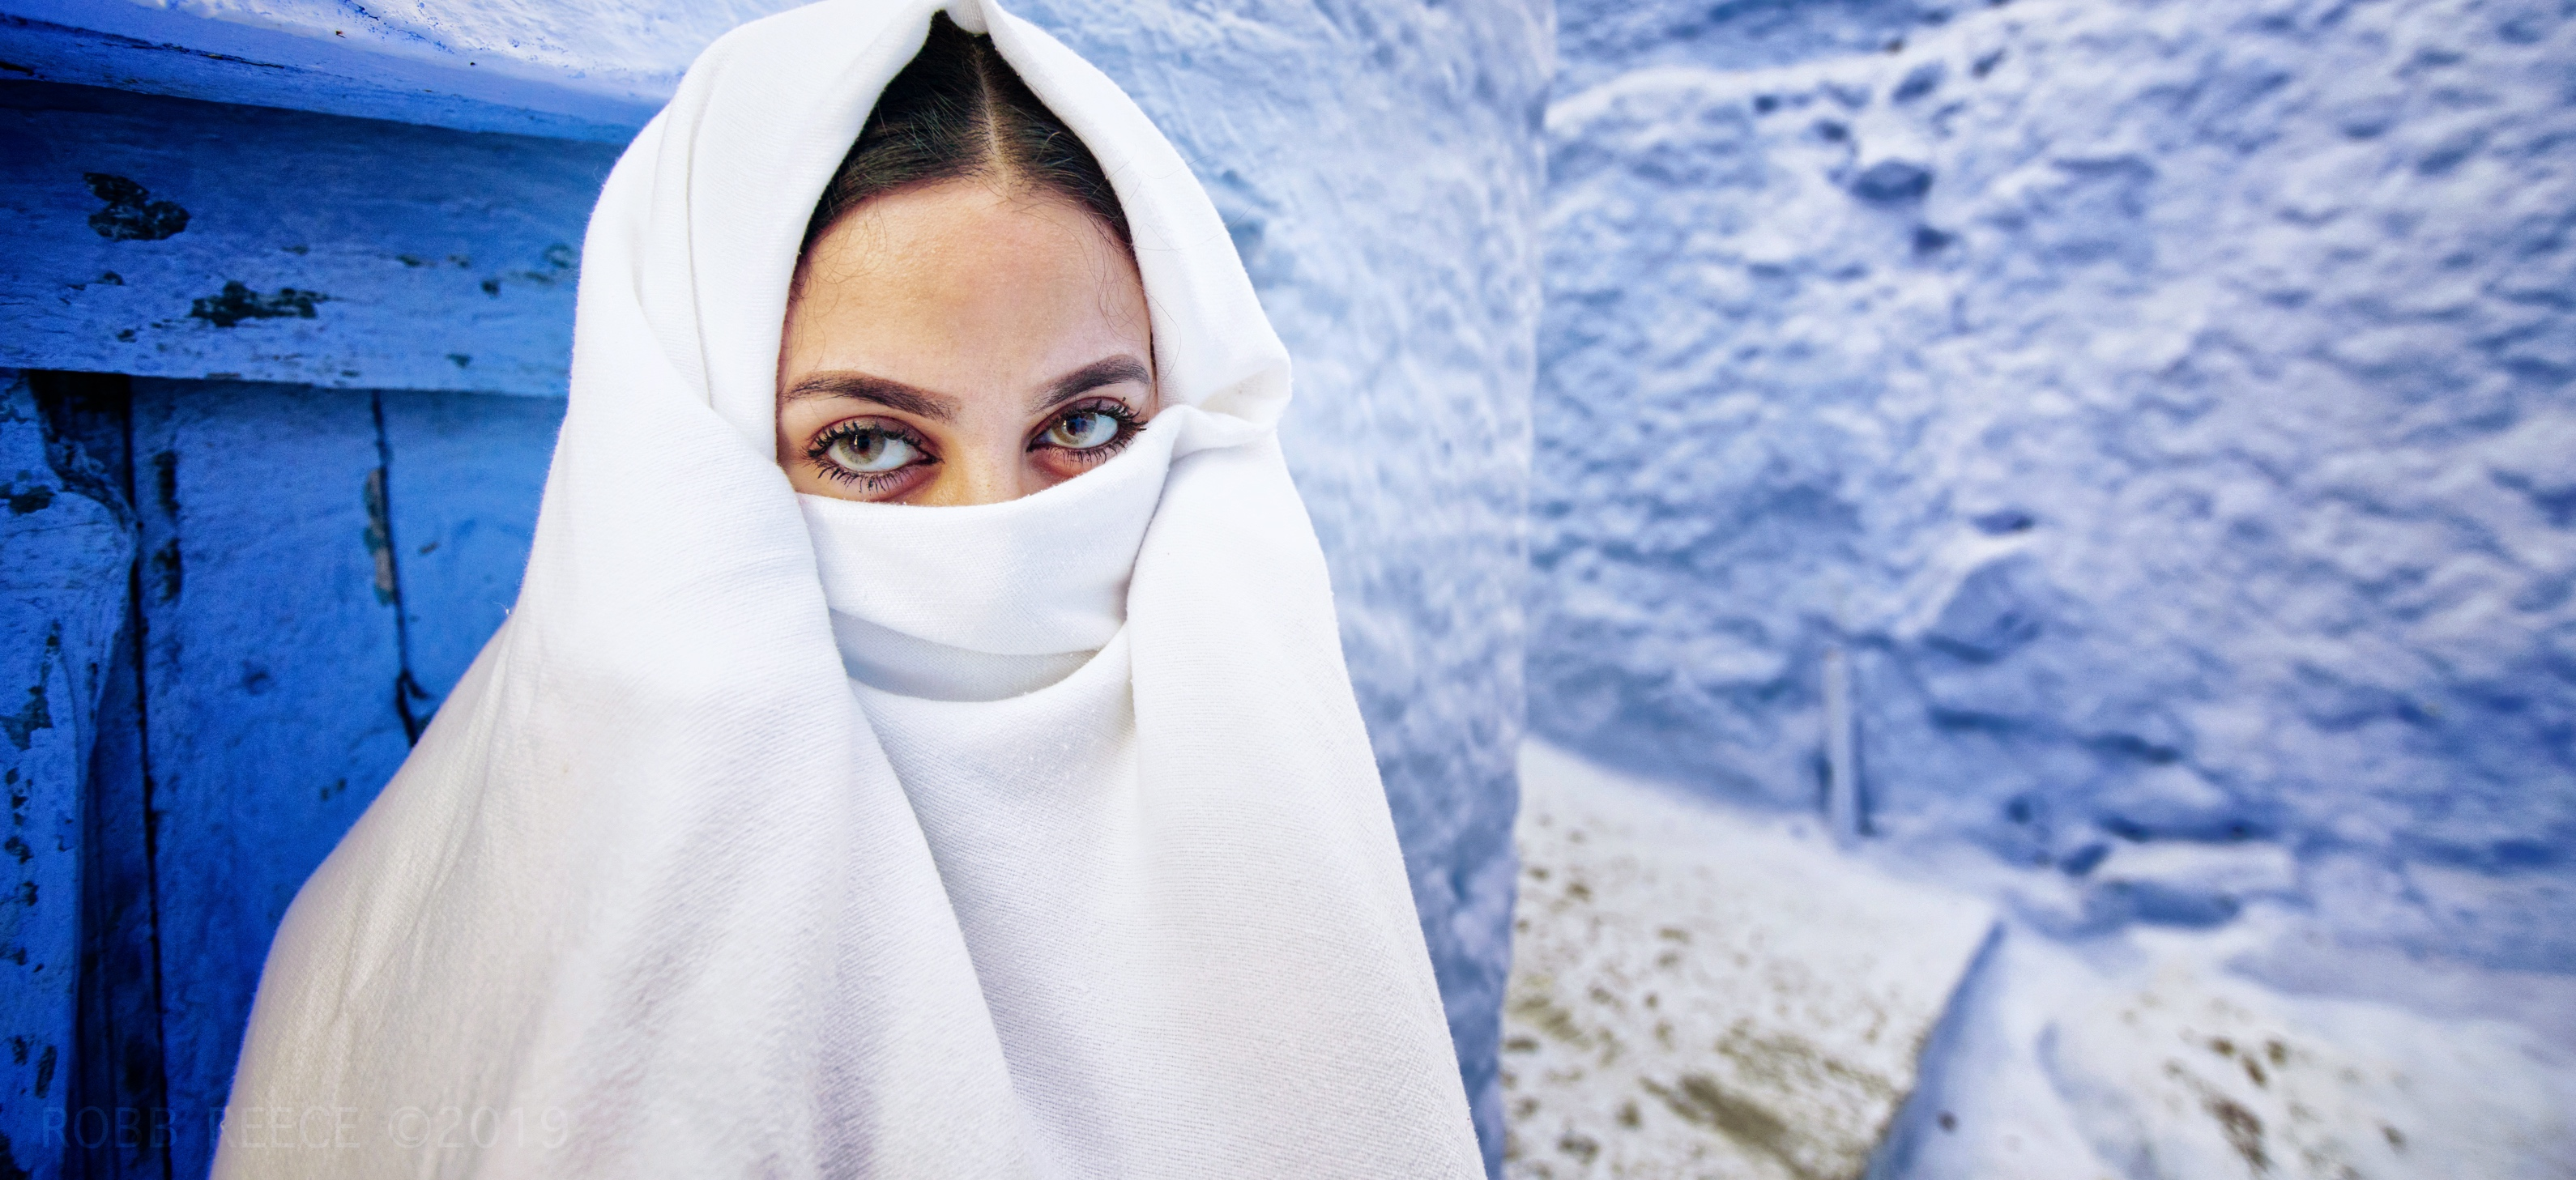 morocco travel portrait national geographic explore